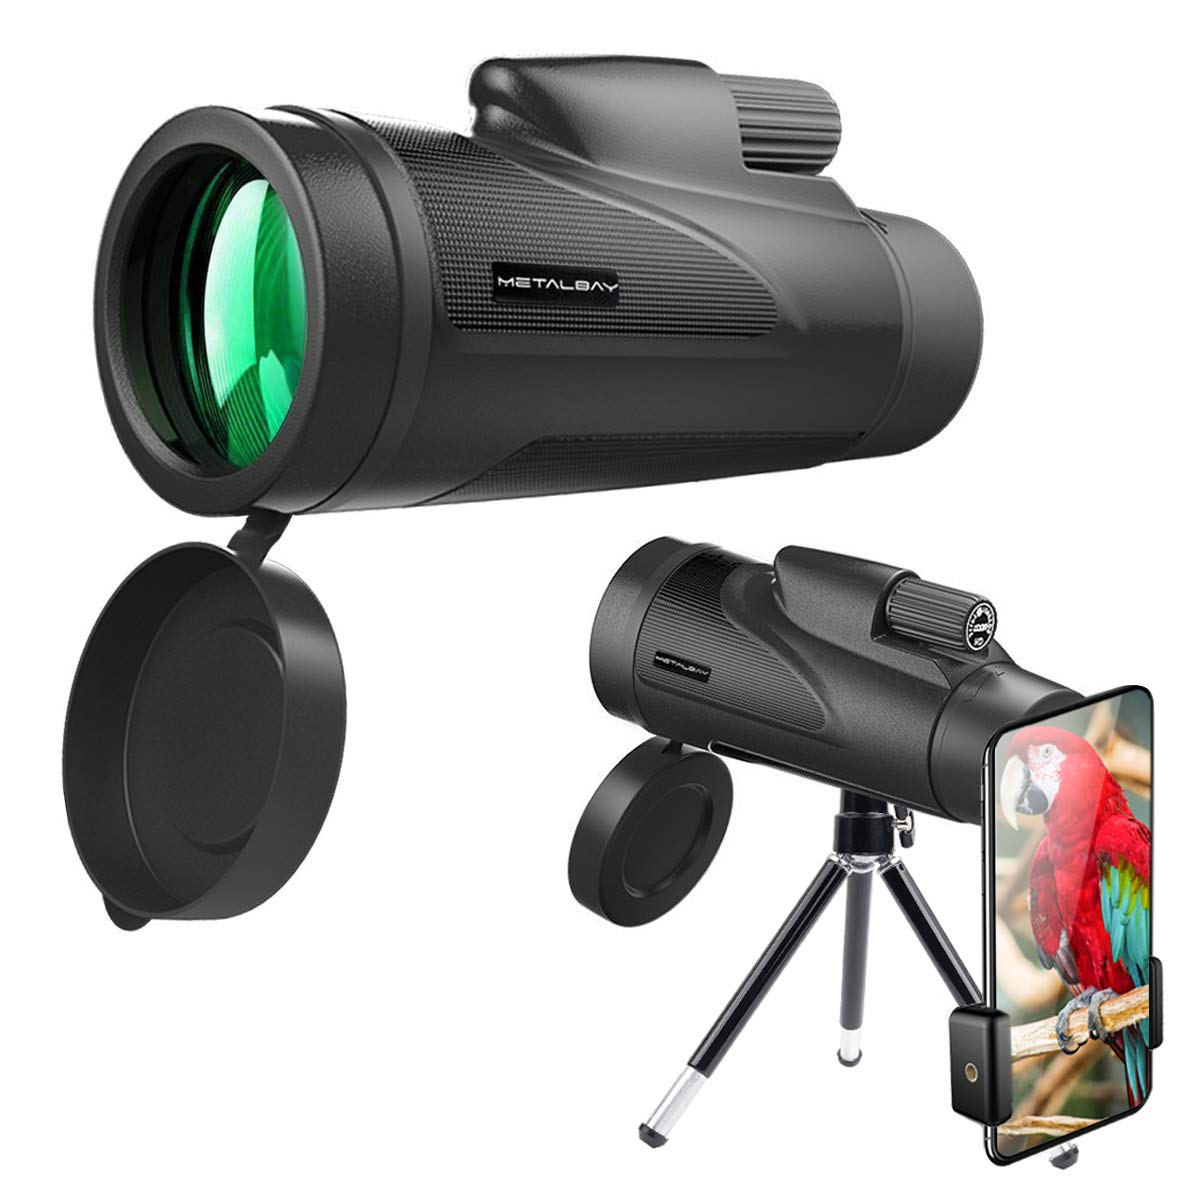 METALBAY High Power Monocular Telescope 12×50 Waterproof Monocular Scope with Tripod & Smartphone Holder, HD Wide Angle BK7 Prism Scope, Low Light Night Vision for Bird Watching Hunting Hiking Outdoor